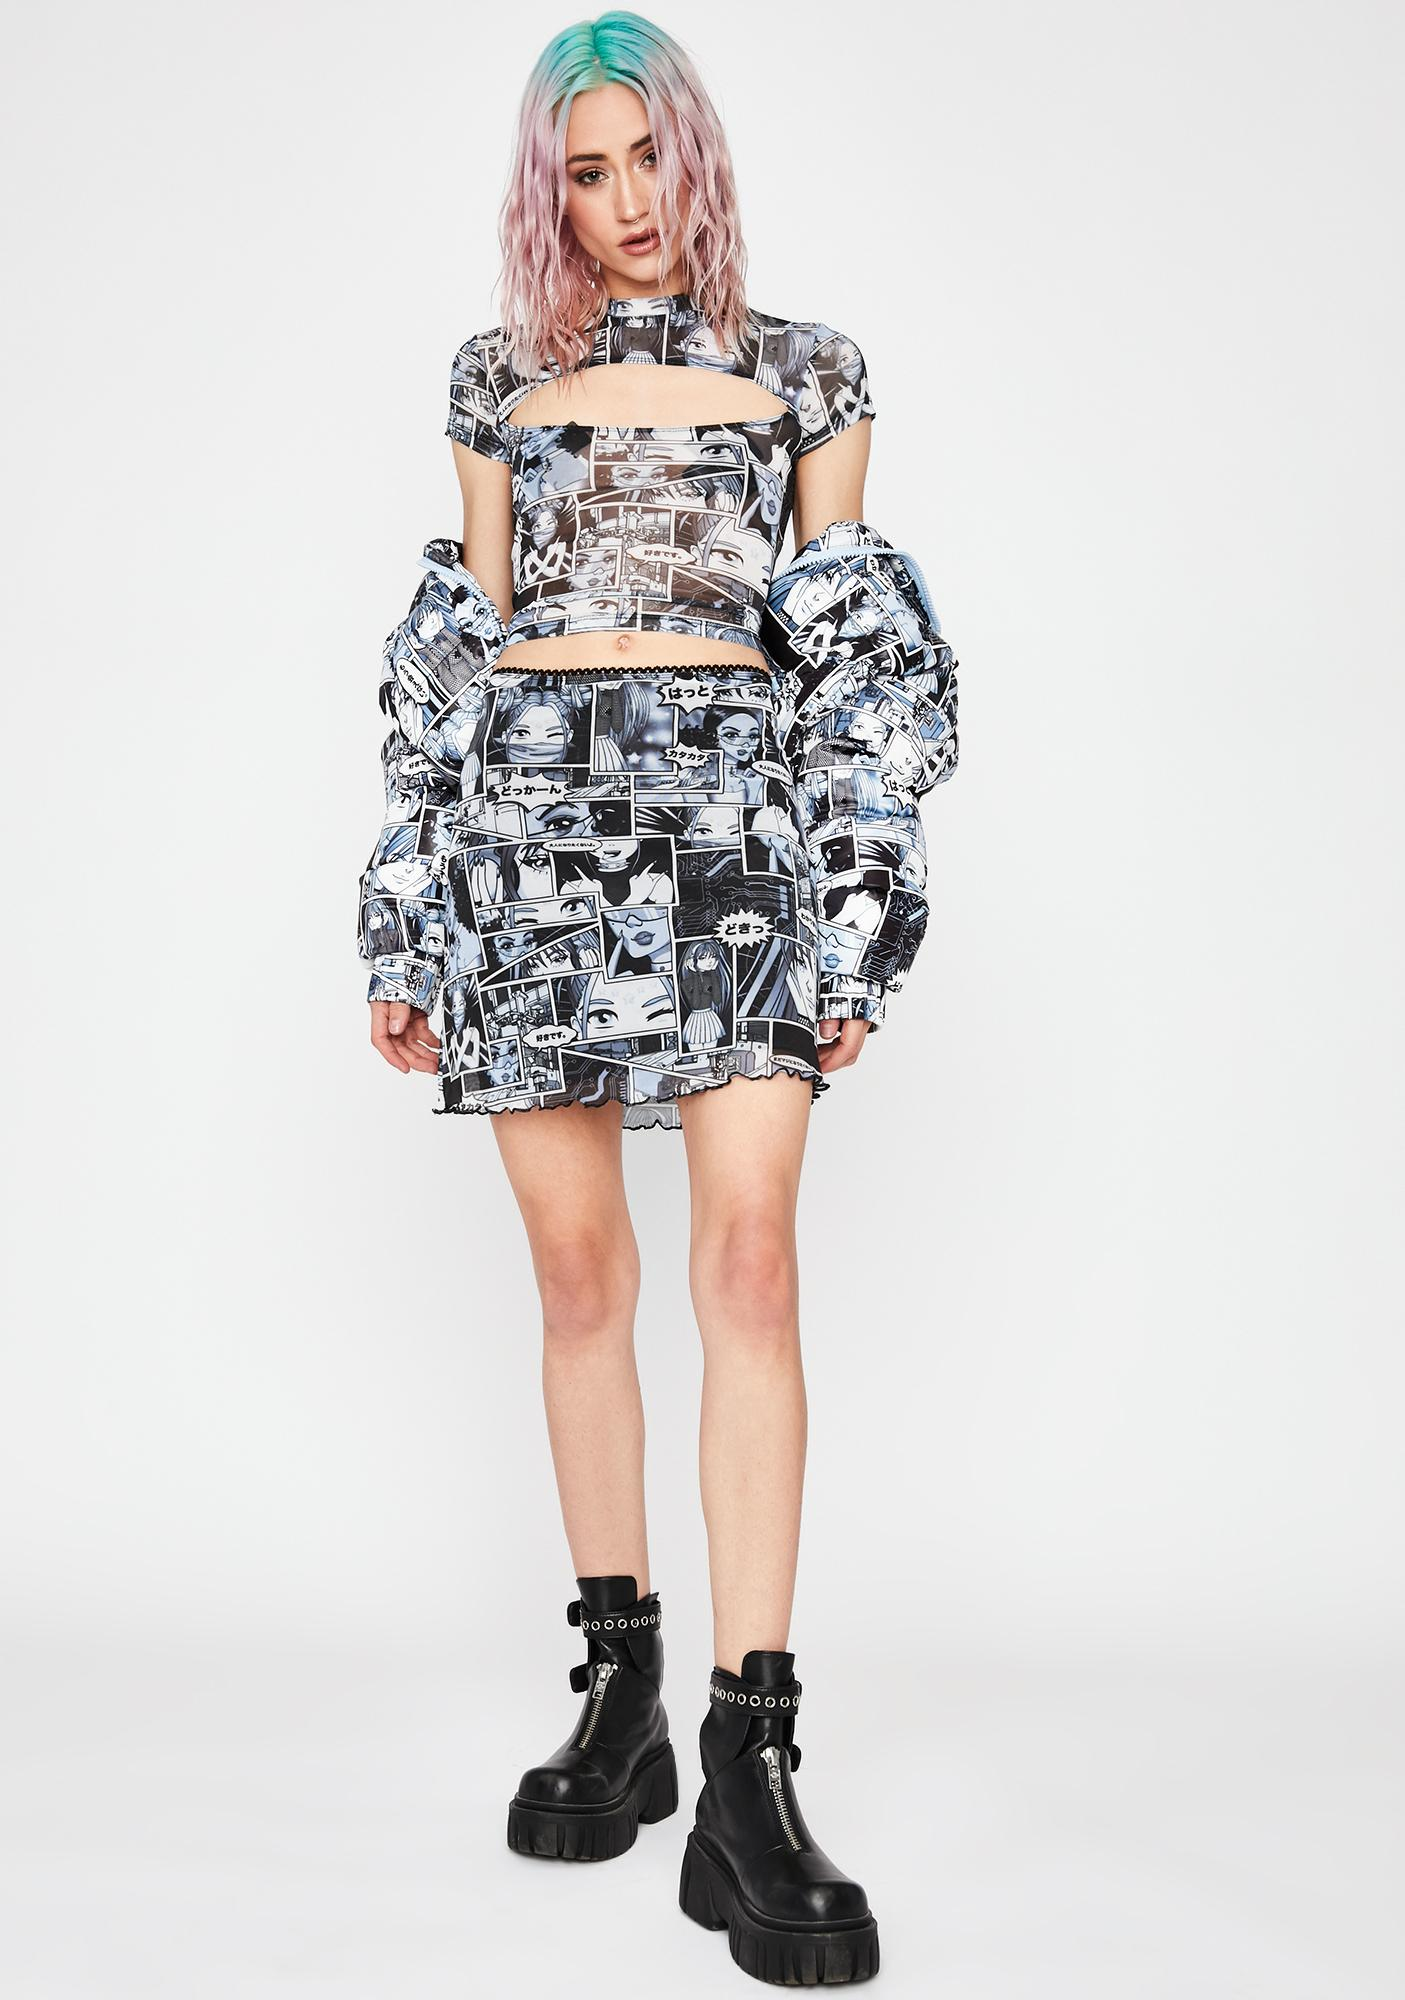 Current Mood Misfit Memoirs Cut Out Top